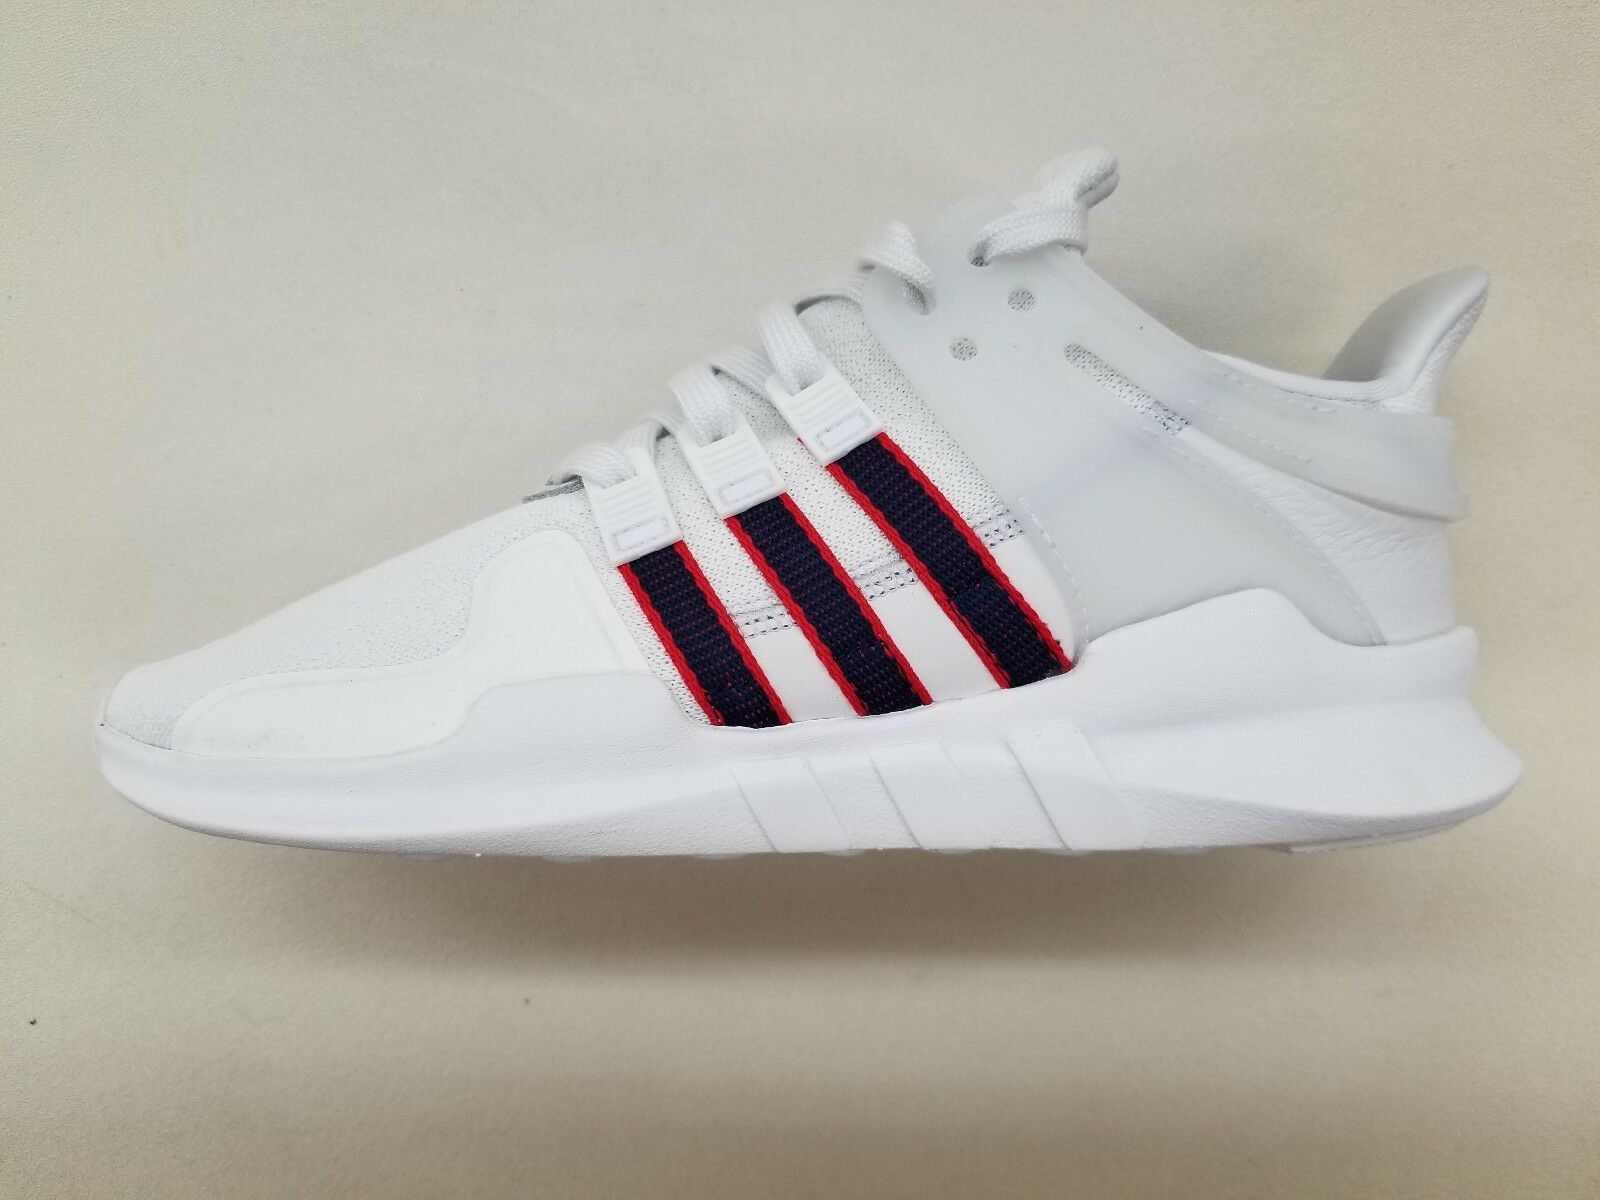 ADIDAS ORIGINALS EQT SUPPORT ADV VINTAGE WHITE NAVY RED MENS SNEAKERS BB6778